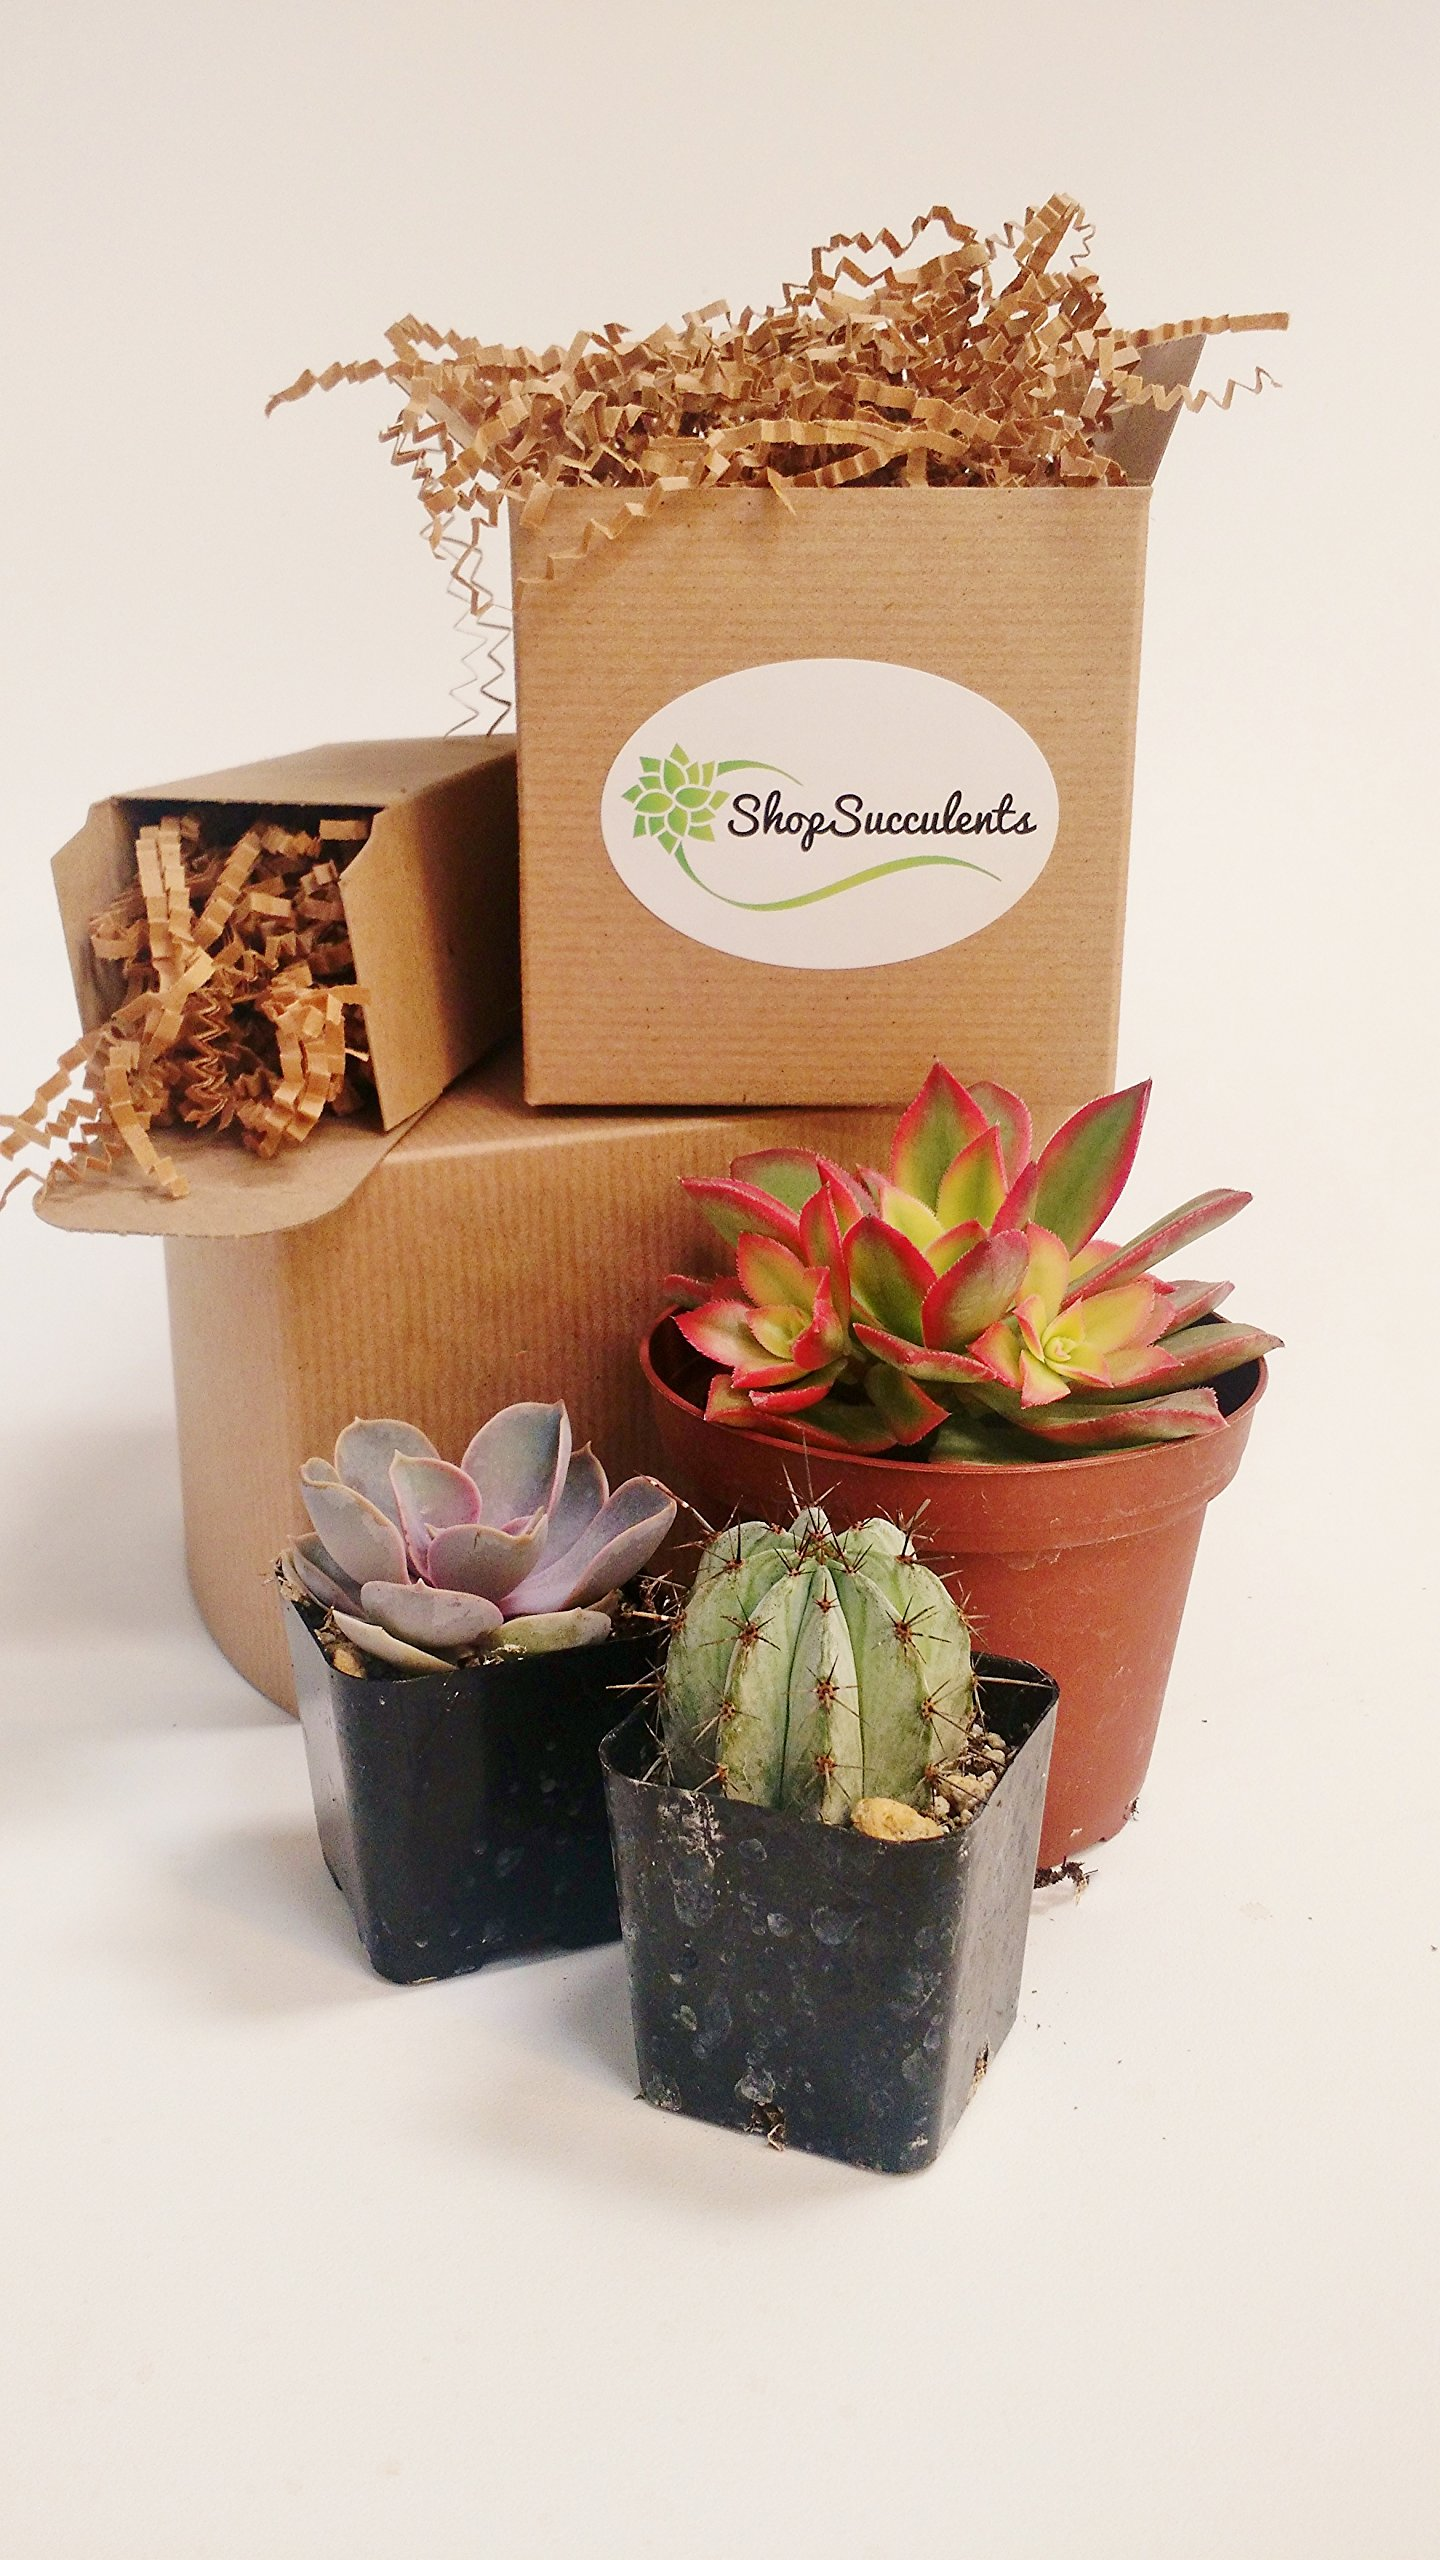 256 Beautiful Succulent Wedding Favors and Gifts plants